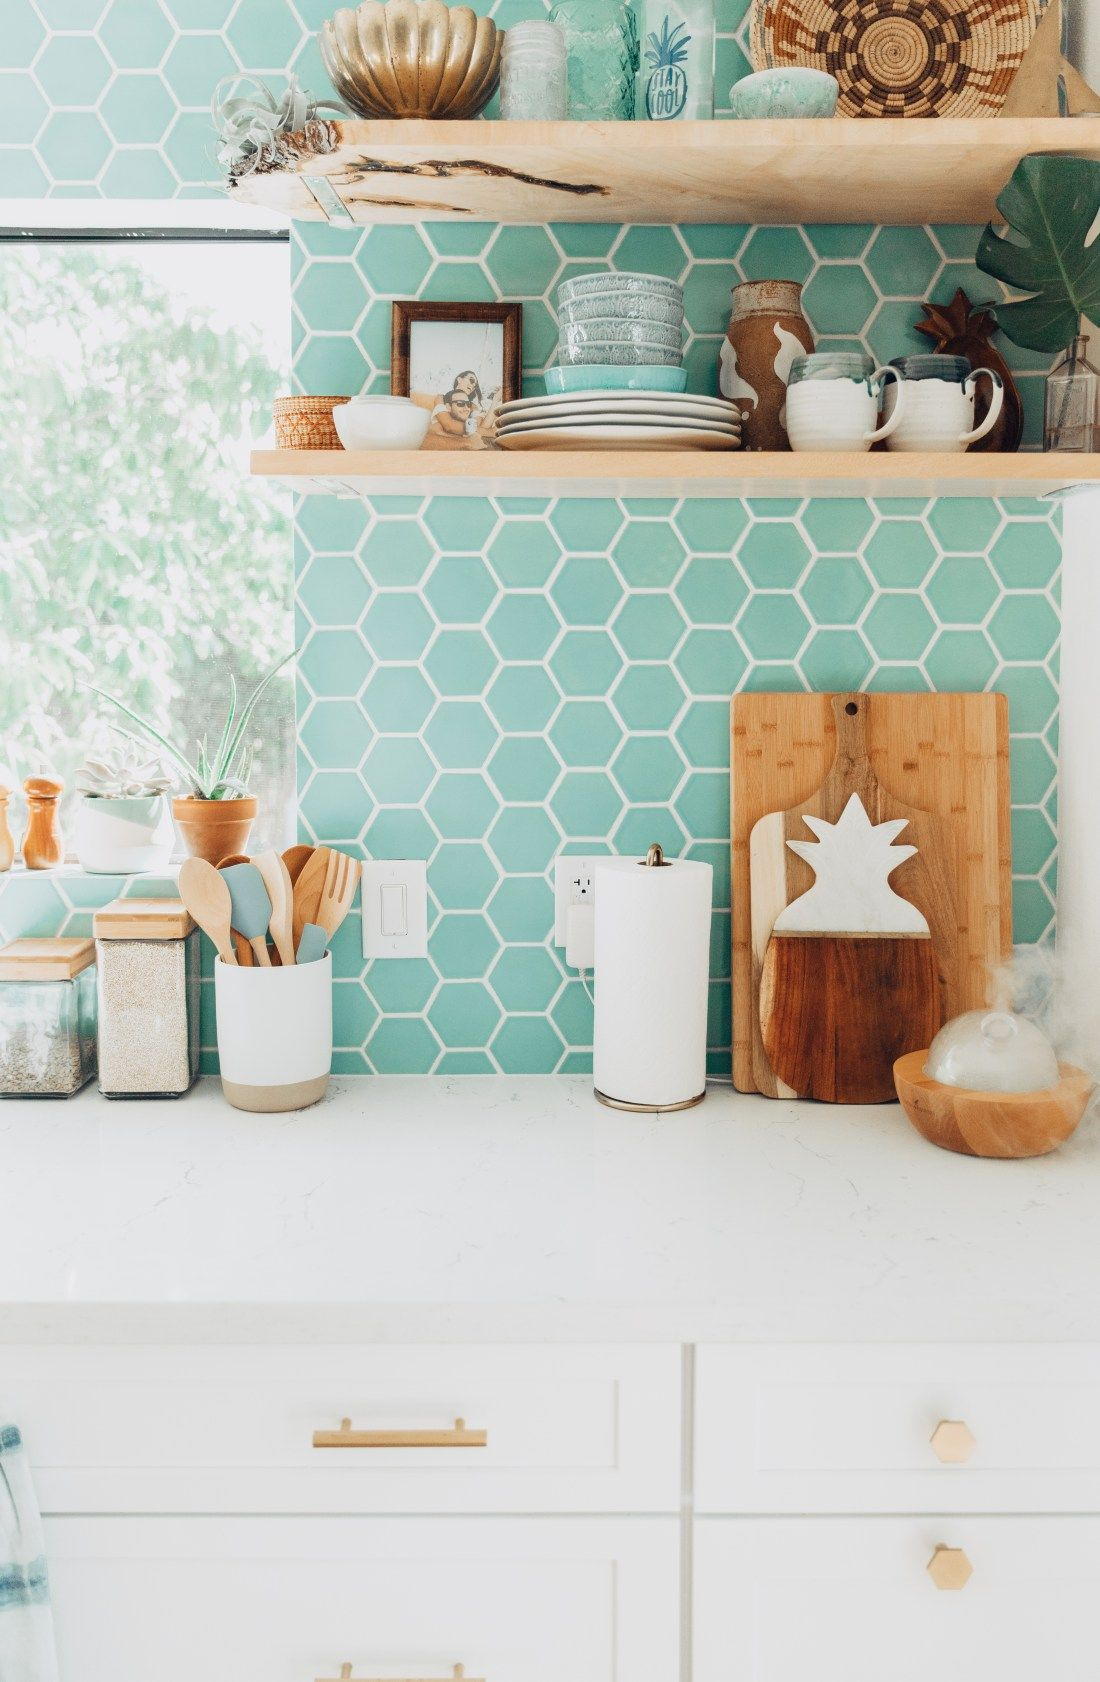 Our Kitchen Renovation Reveal | elanaloo.com | resource for travel ...